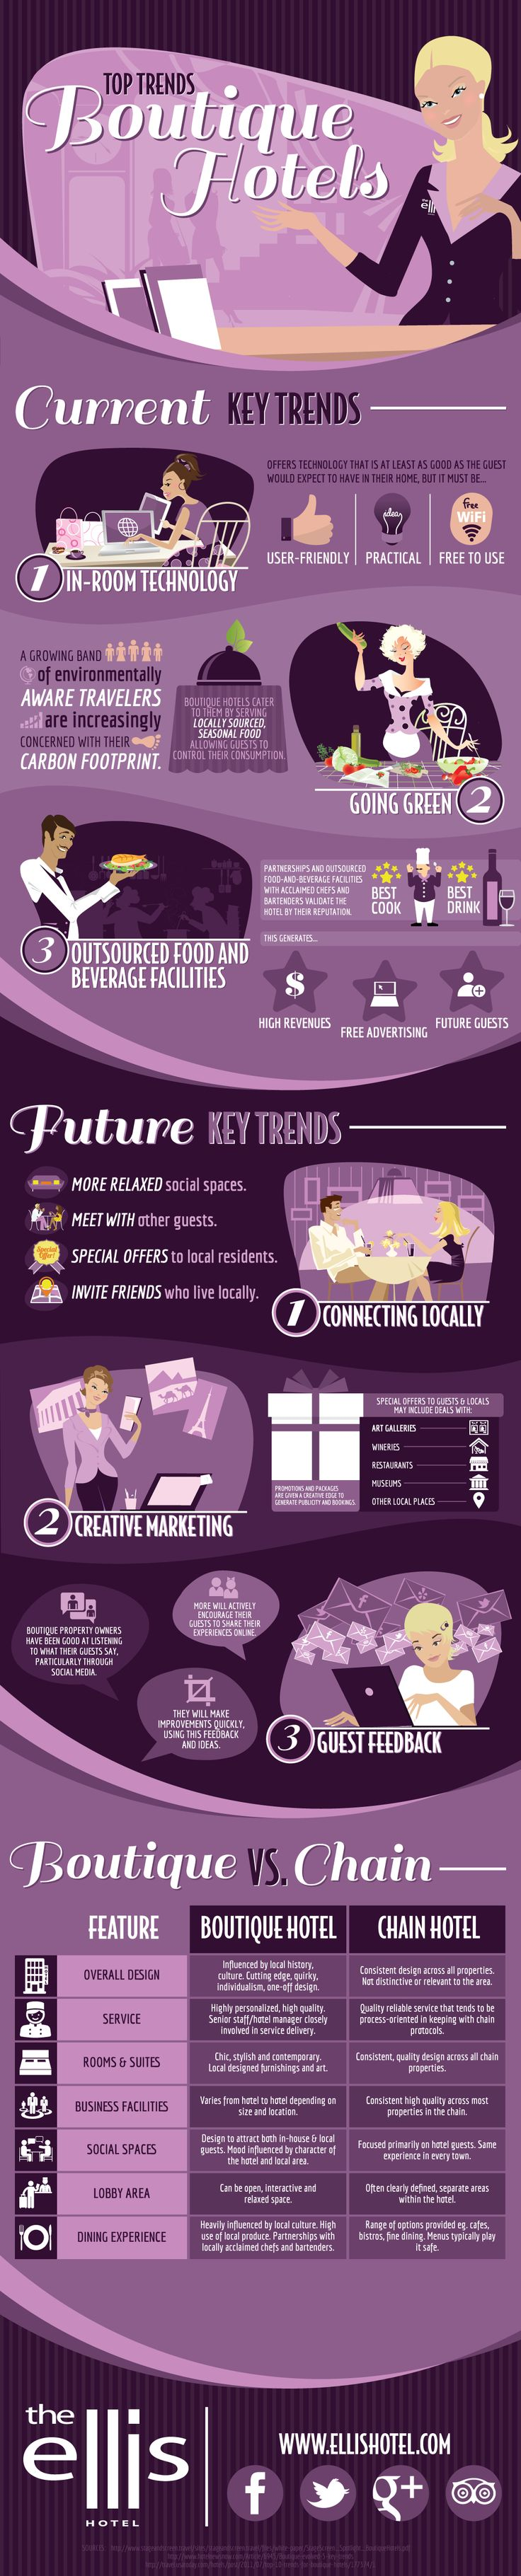 Top Trends of Boutique Hotels #infographic #Hotel #Trends #HotelMarketing